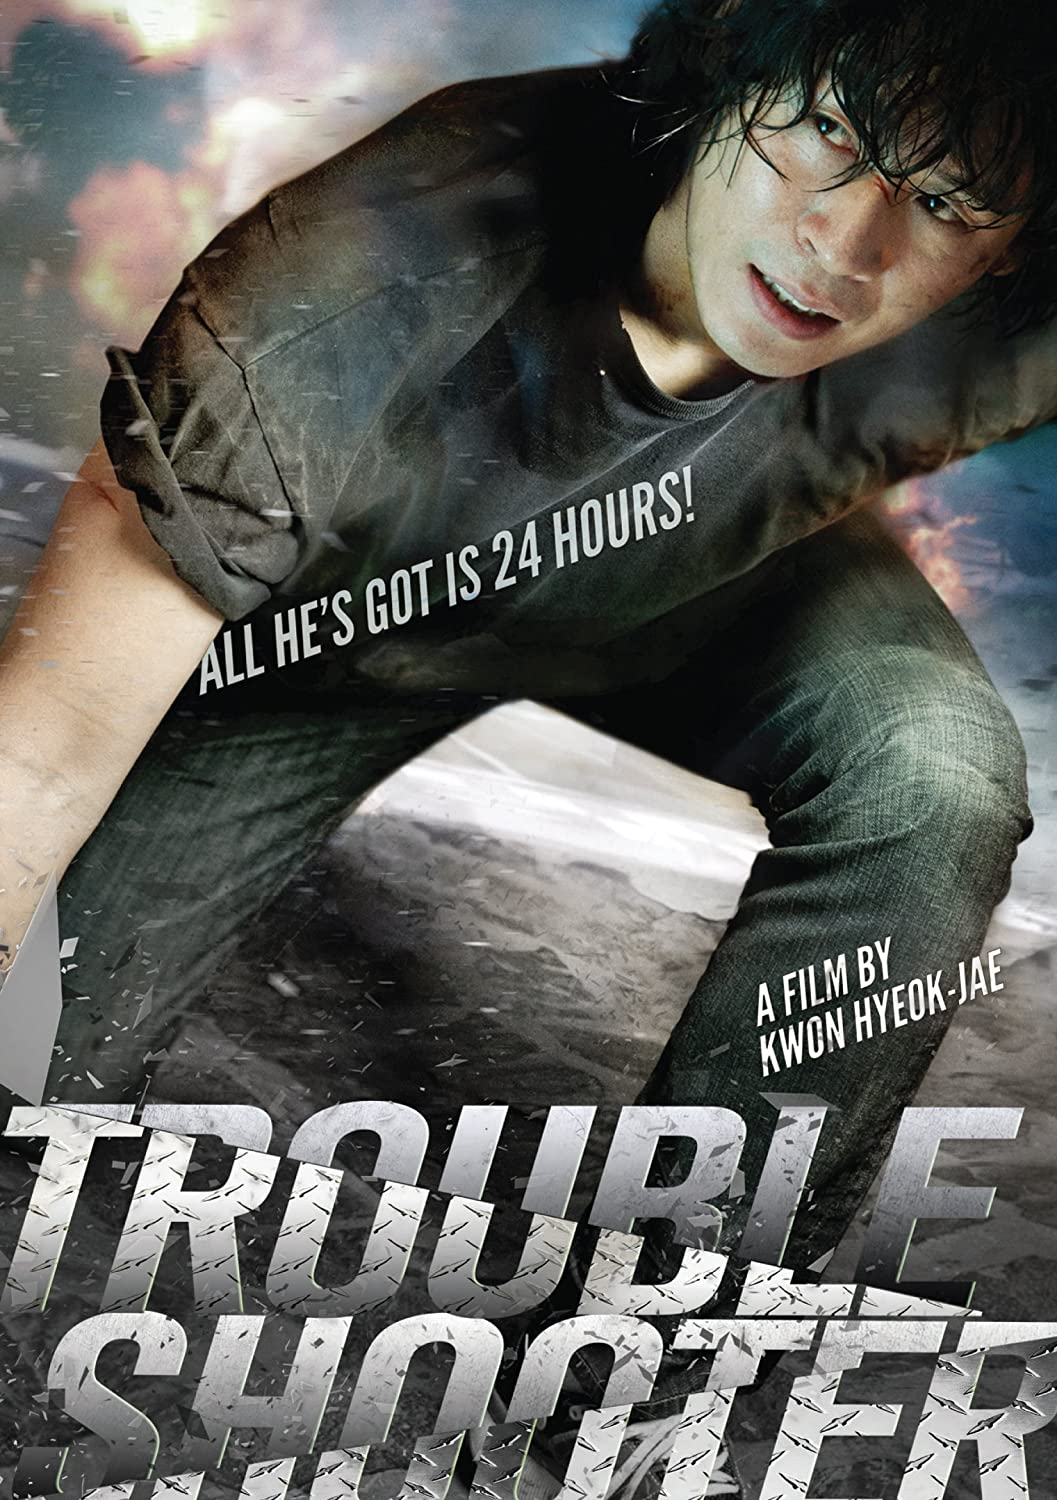 Troubleshooter Kyung-gu Sul Jung-jin Lee Hyeok-jae Kwon Cinema Asia Releasin